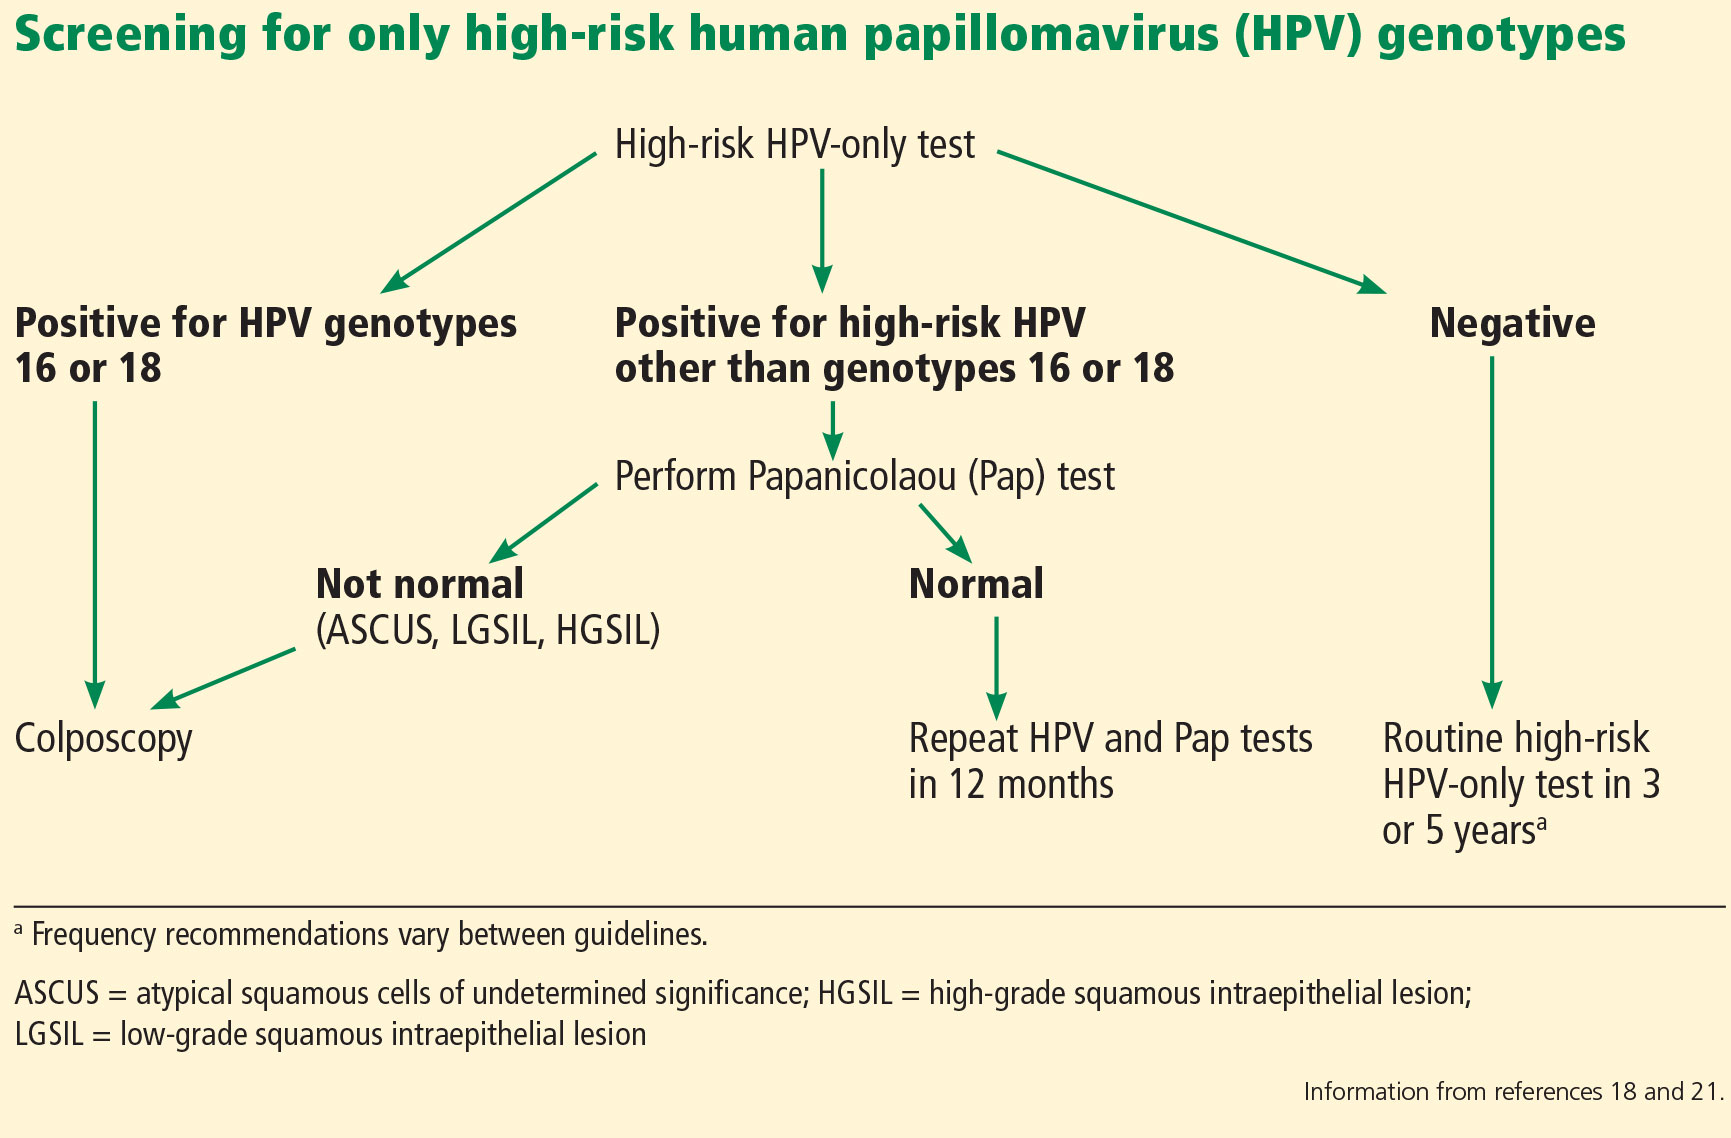 hpv high risk positive treatment